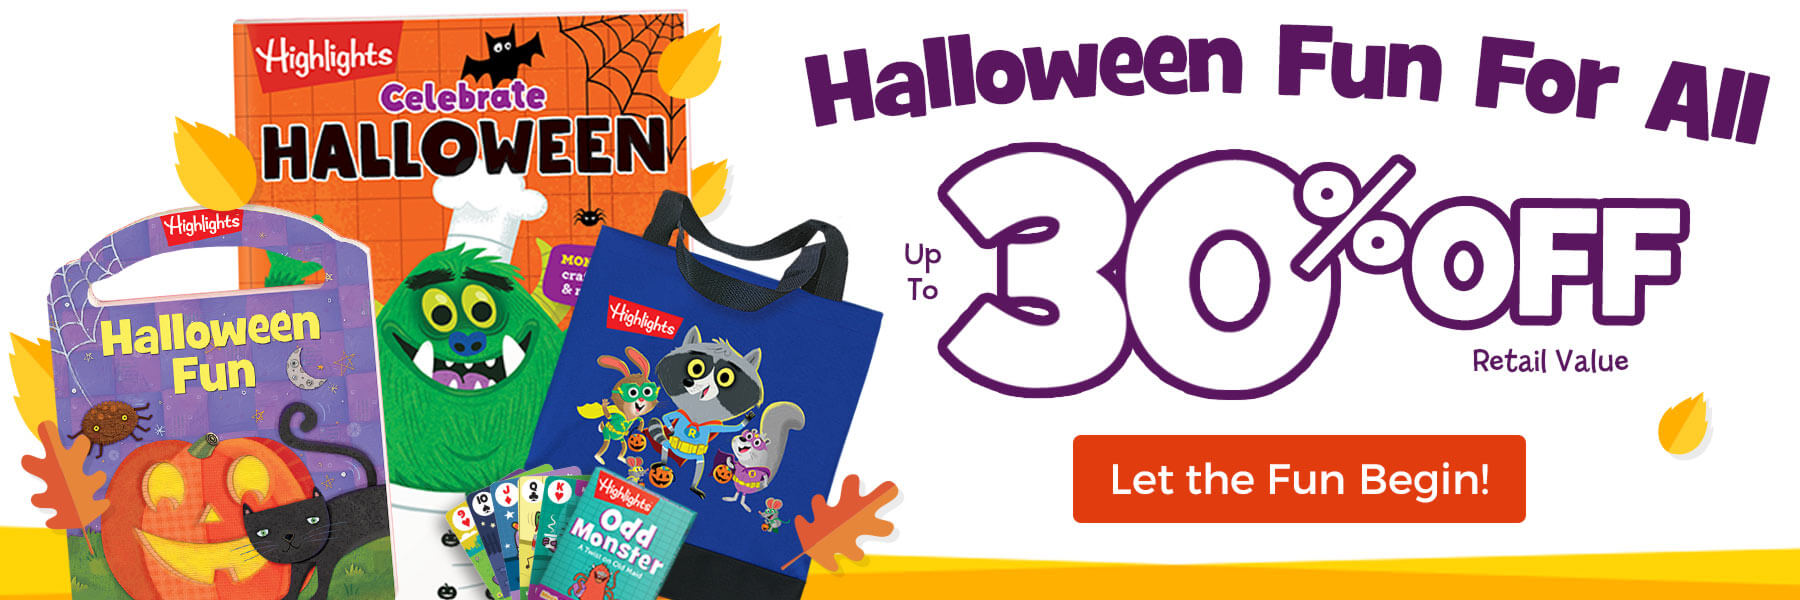 Save up to 30% on Halloween fun for kids of all ages.